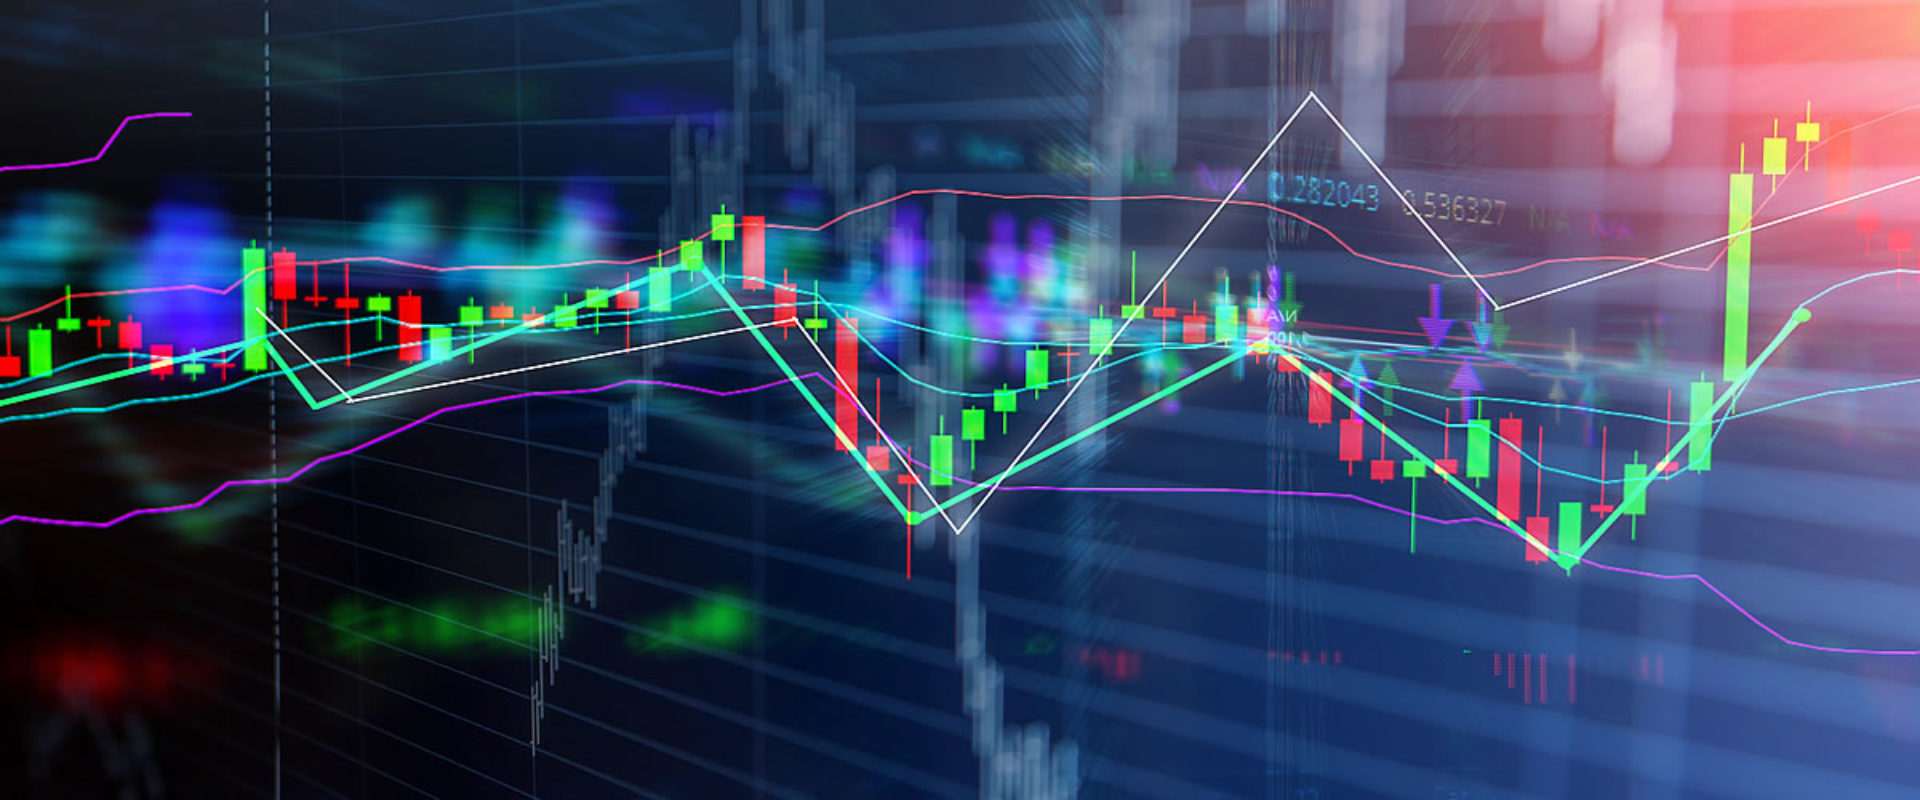 Binance Coin (BNB) Likely To Retrace In Days Ahead, Capped at $38